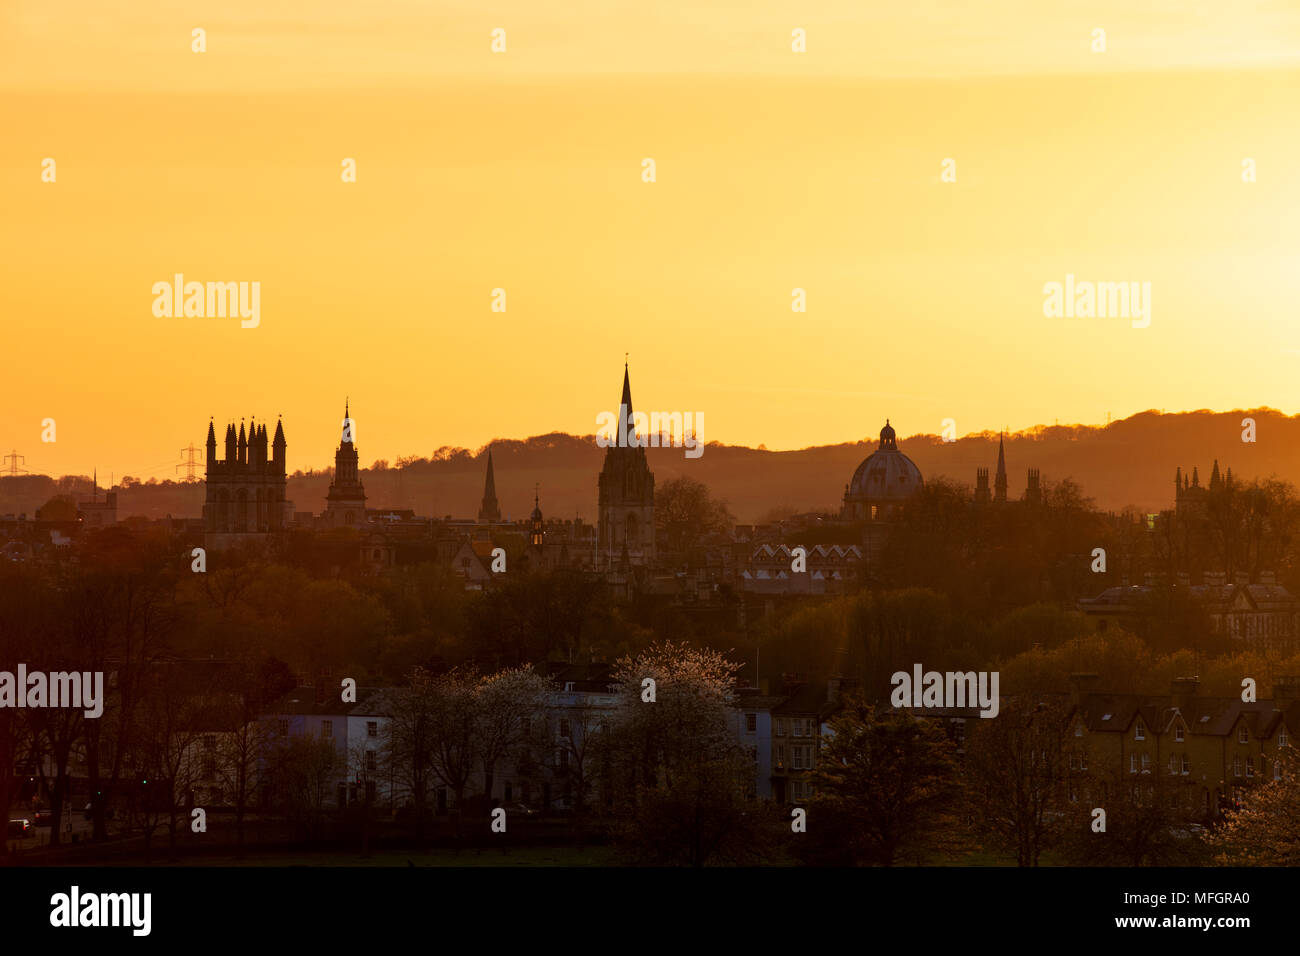 Oxford city from south park at sunset. Oxford, Oxfordshire, England - Stock Image